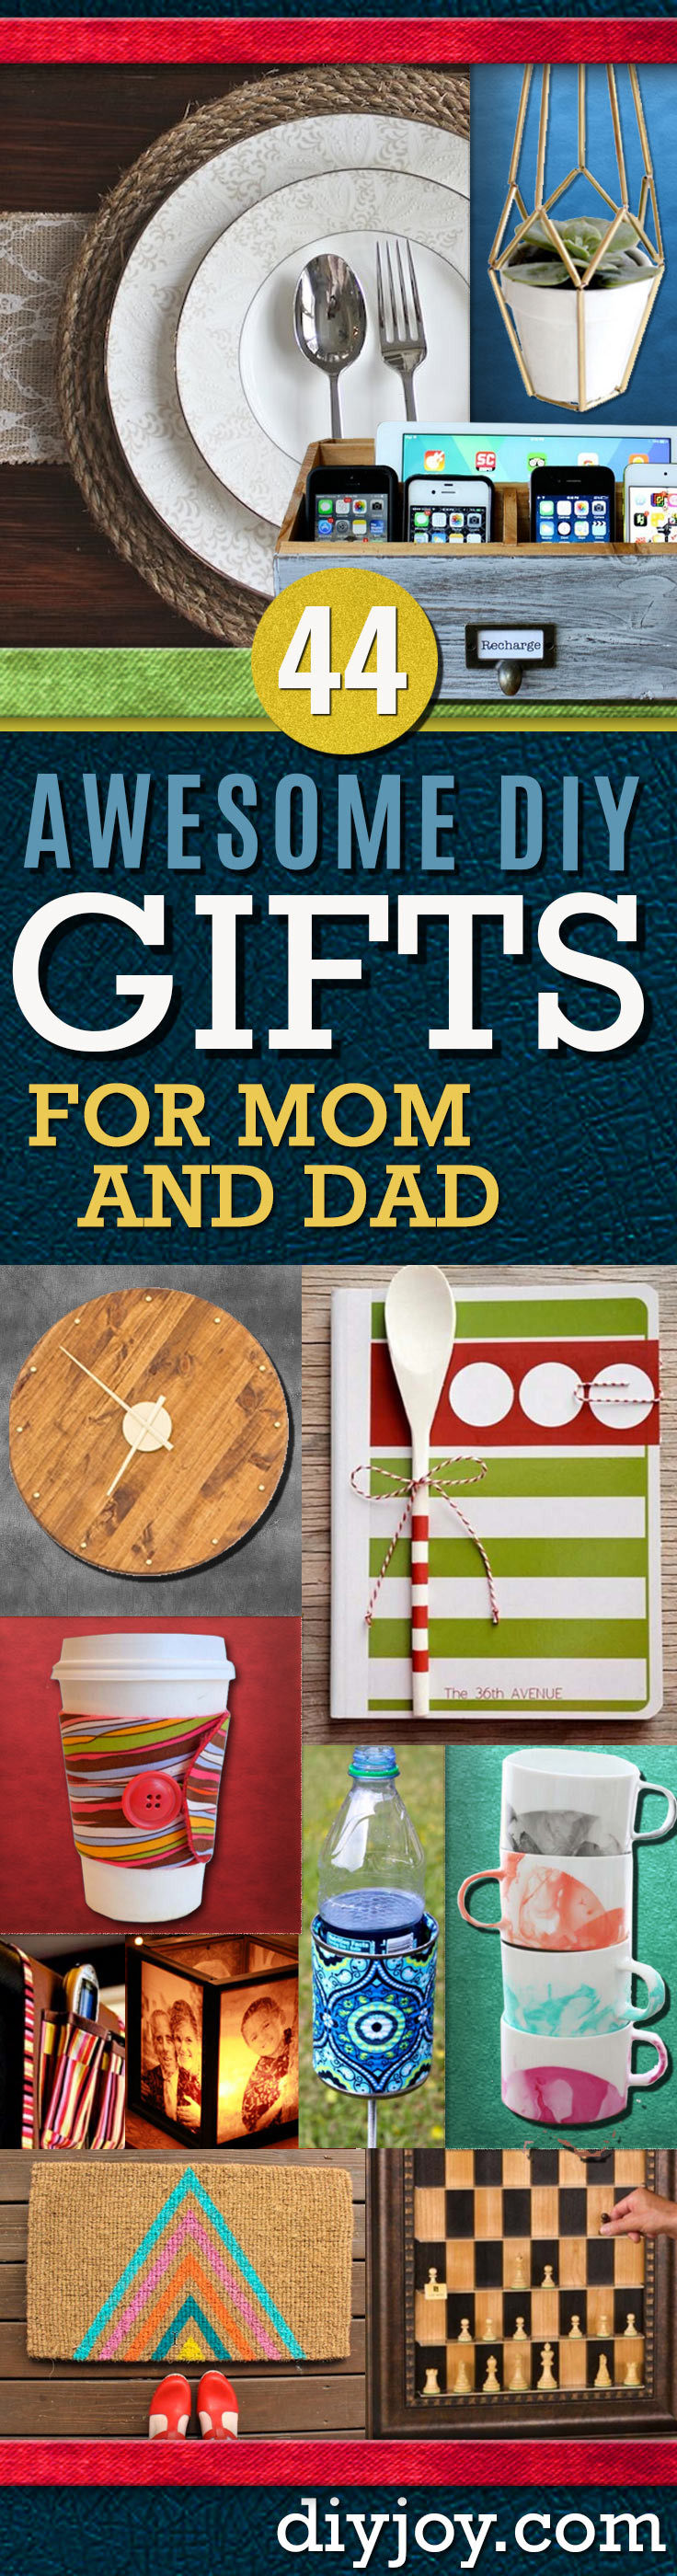 Gift Ideas For Mom For Christmas  Awesome DIY Gift Ideas Mom and Dad Will Love